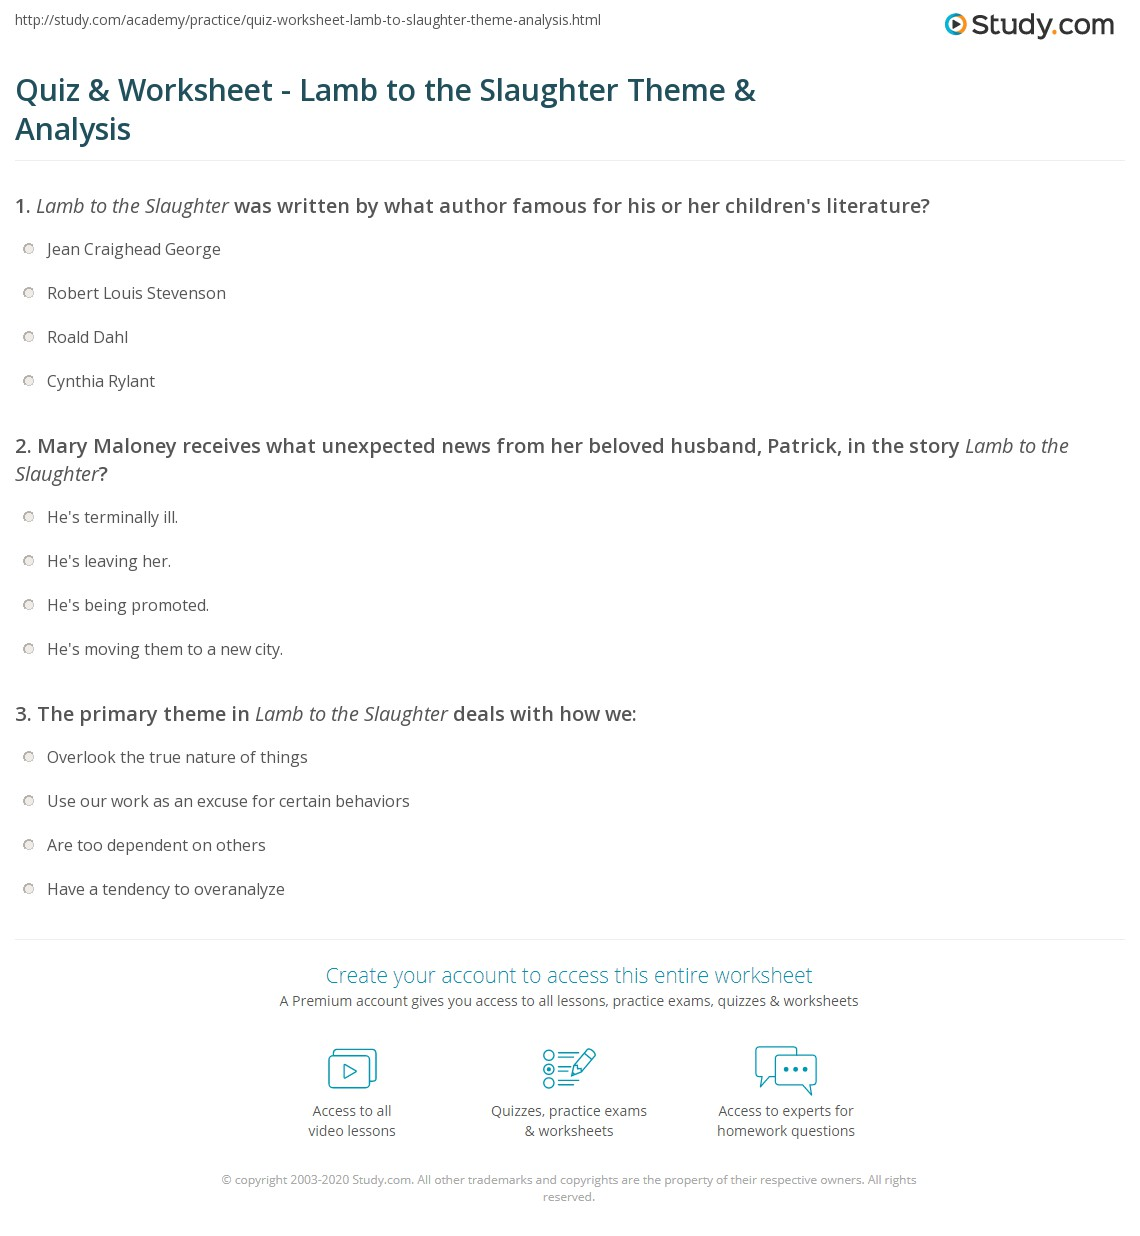 lamb to the slaughter worksheets delibertad quiz worksheet lamb to the slaughter theme analysis study com